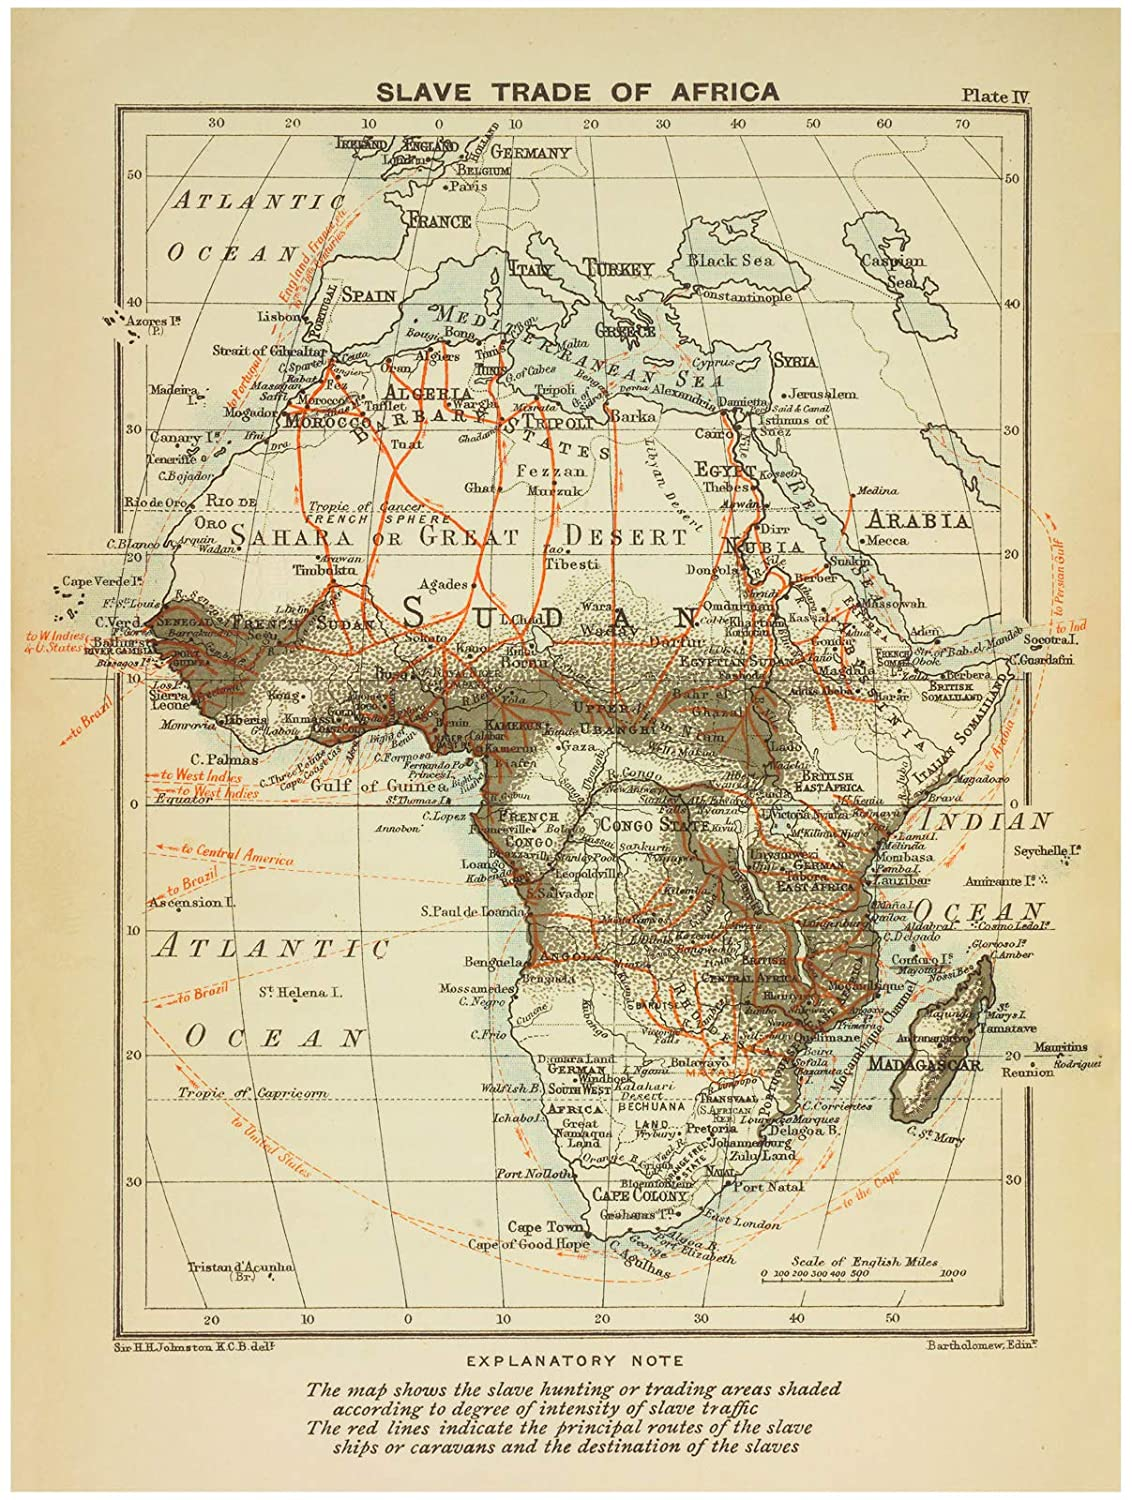 Historic 1899 Map | Slave trade of Africa. | AfricaAntique Vintage Map Reproduction Historic Pictoric